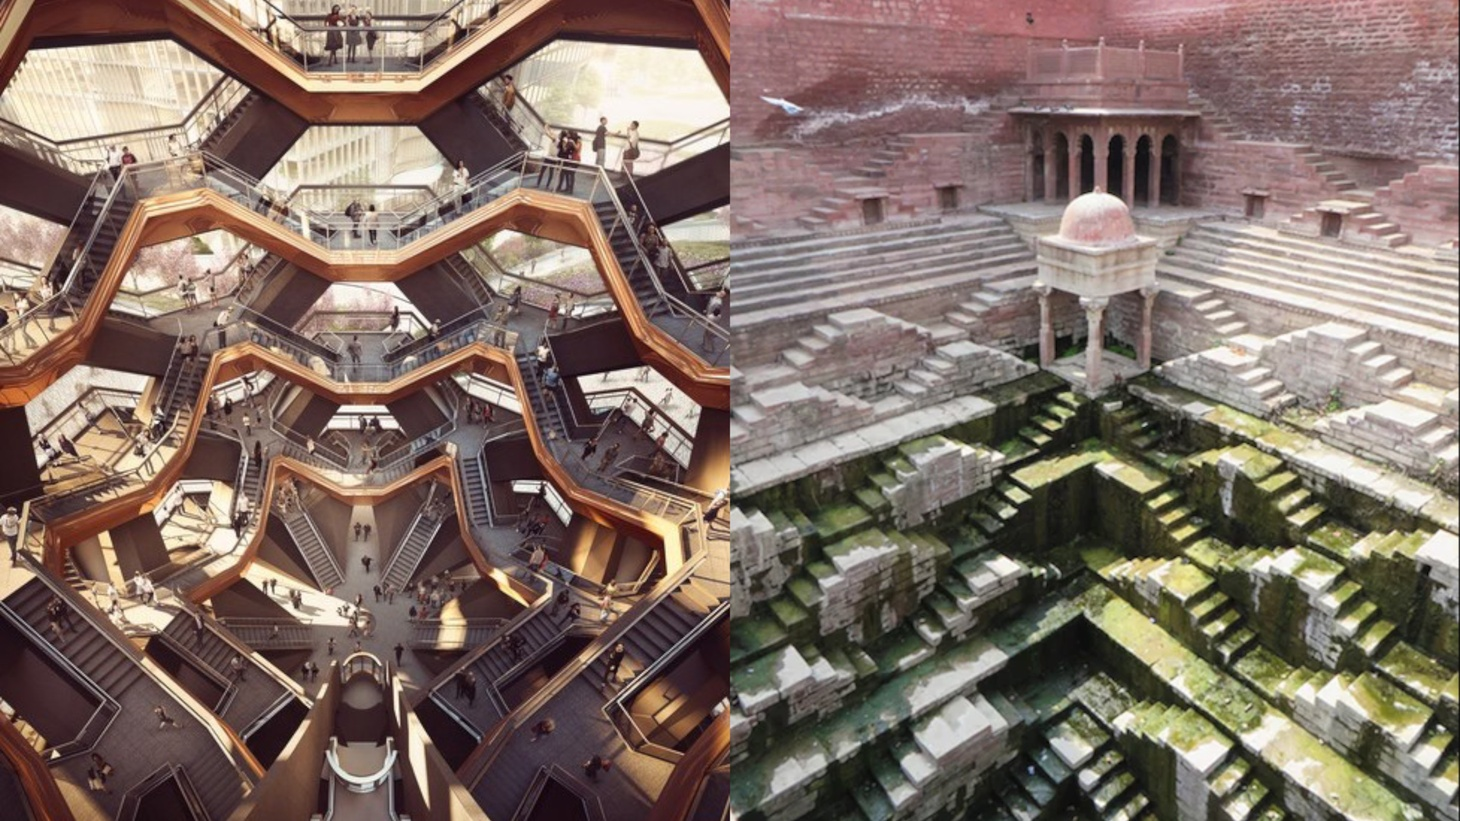 An ancient stepwell in India, right (photo by Victoria Lautman), inspires designers today, including Vessel creator Thomas Heatherwick (image courtesy of Forbes Massie-Heatherwick Studio).